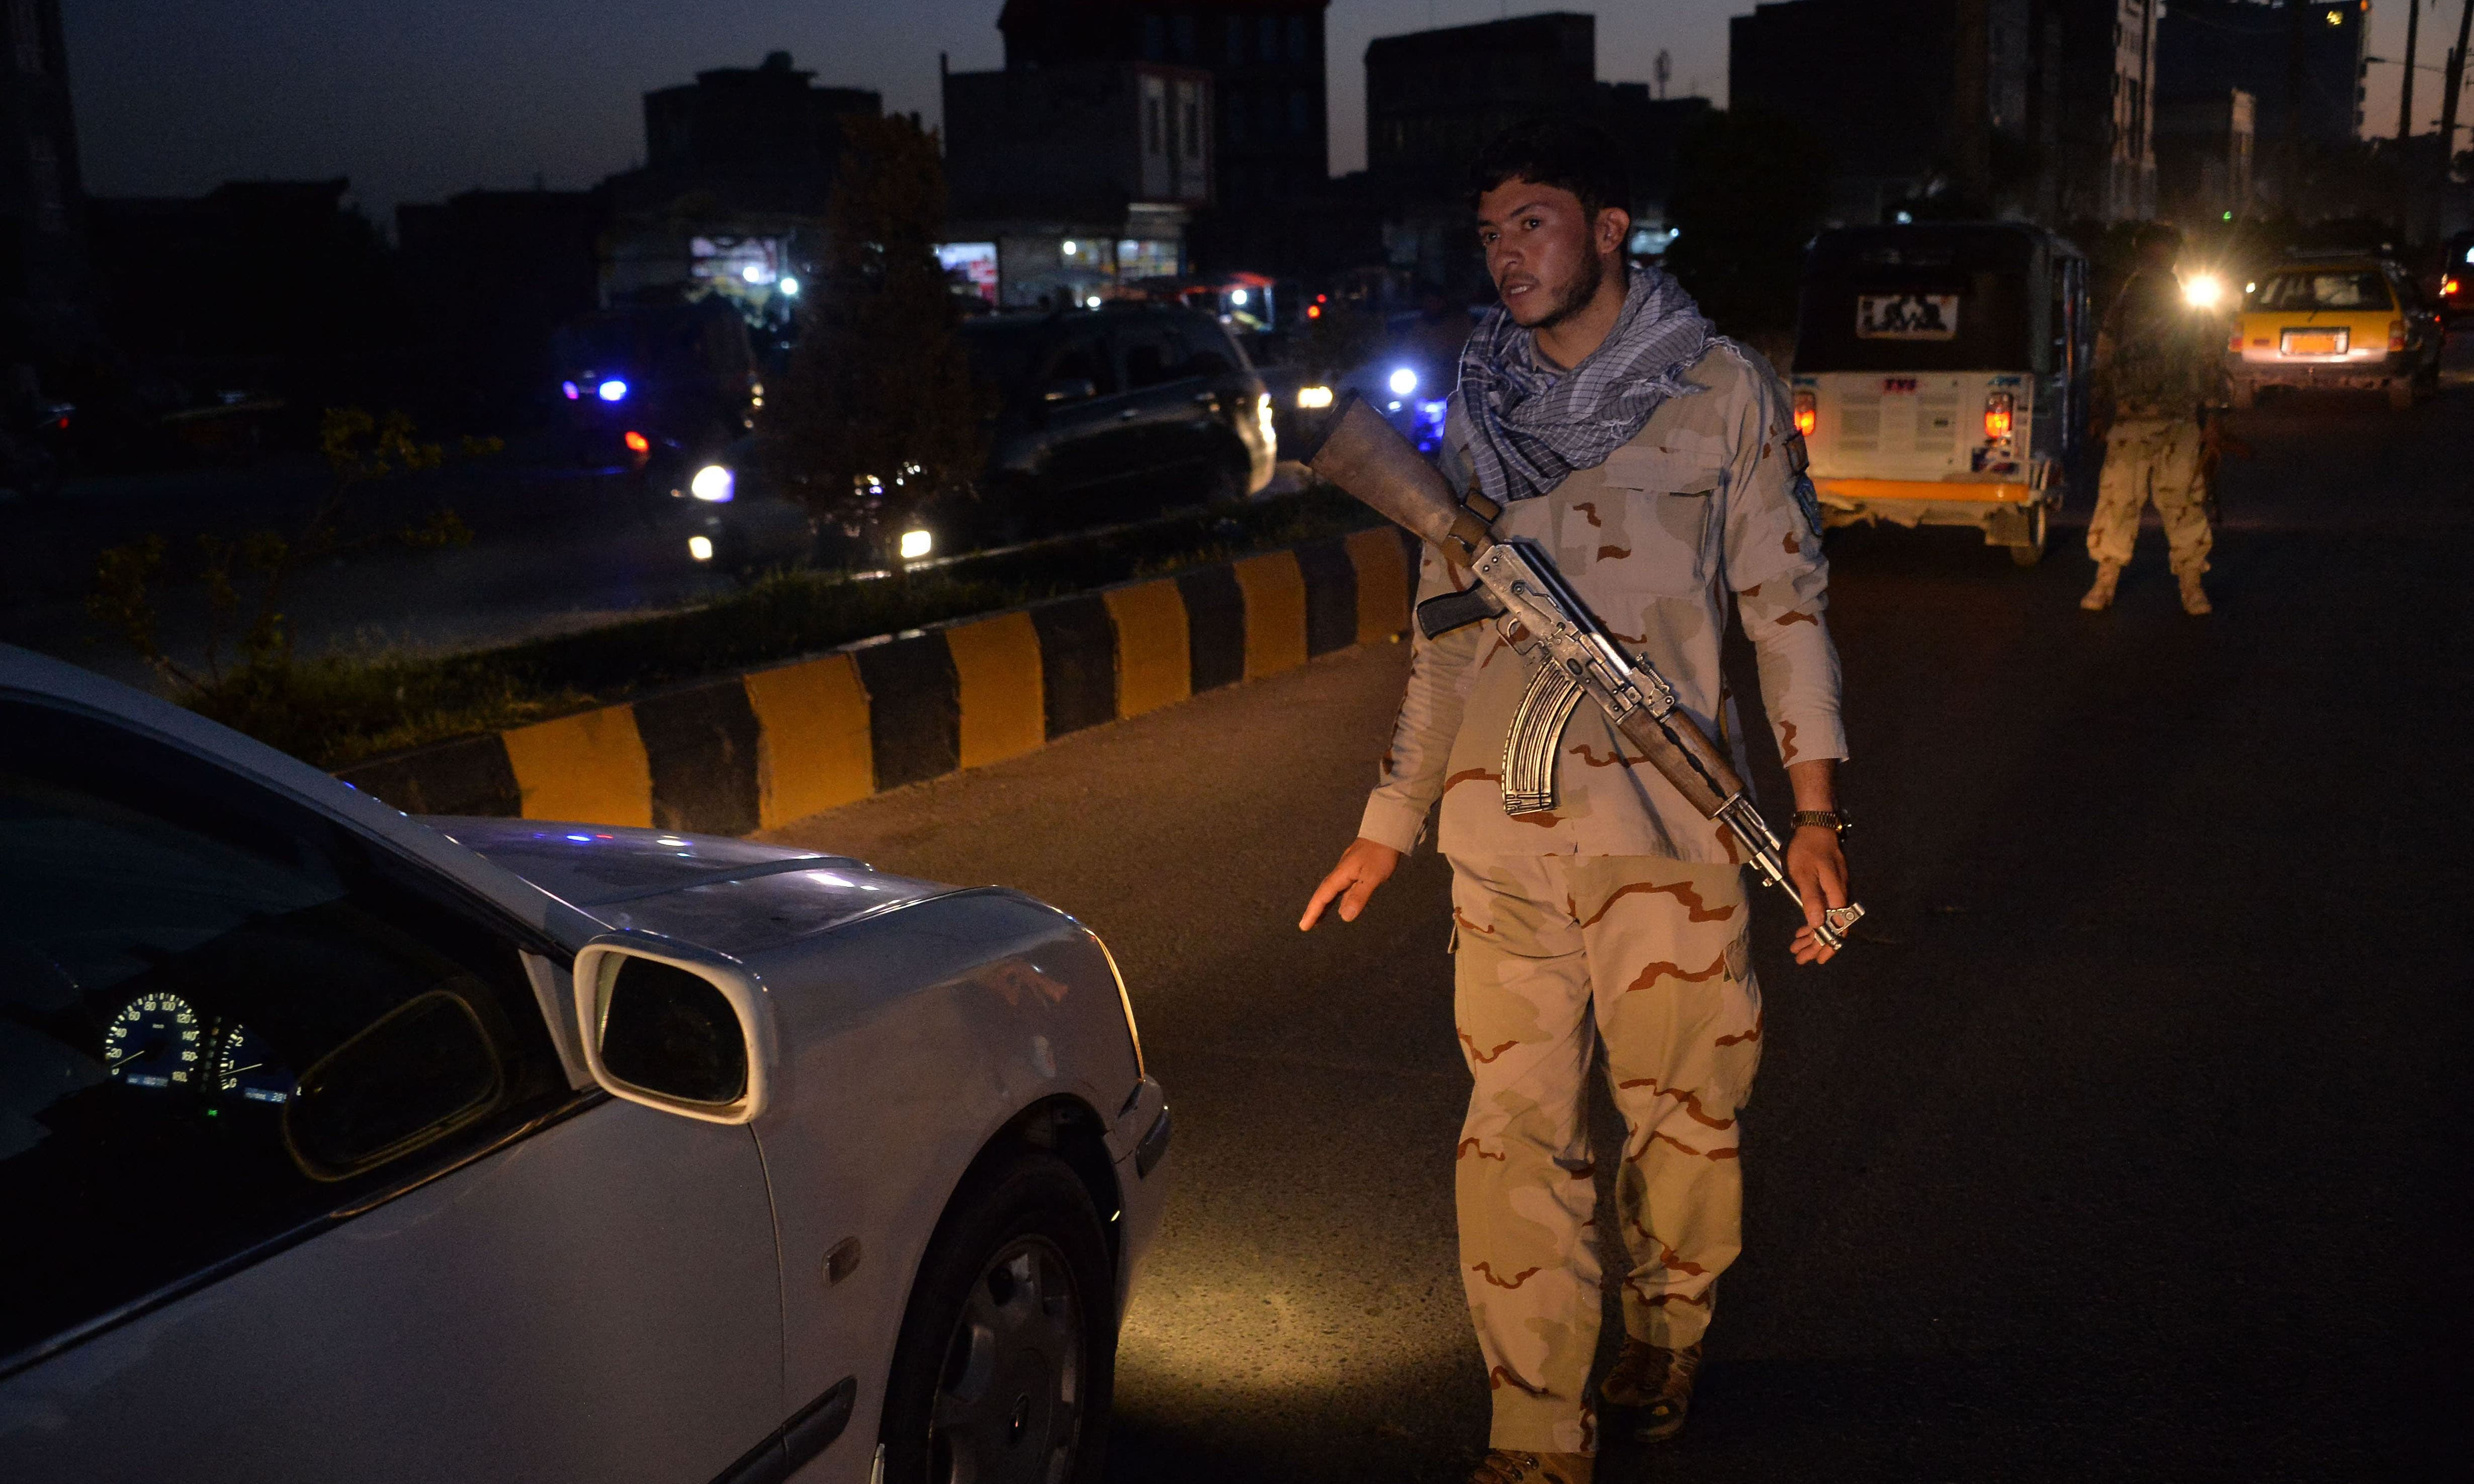 A security personnel stops a vehicle at a check point in Herat on Saturday, as a night curfew was imposed across 31 of the country's 34 provinces to curb surging violence unleashed by a sweeping Taliban offensive in recent months. — AFP